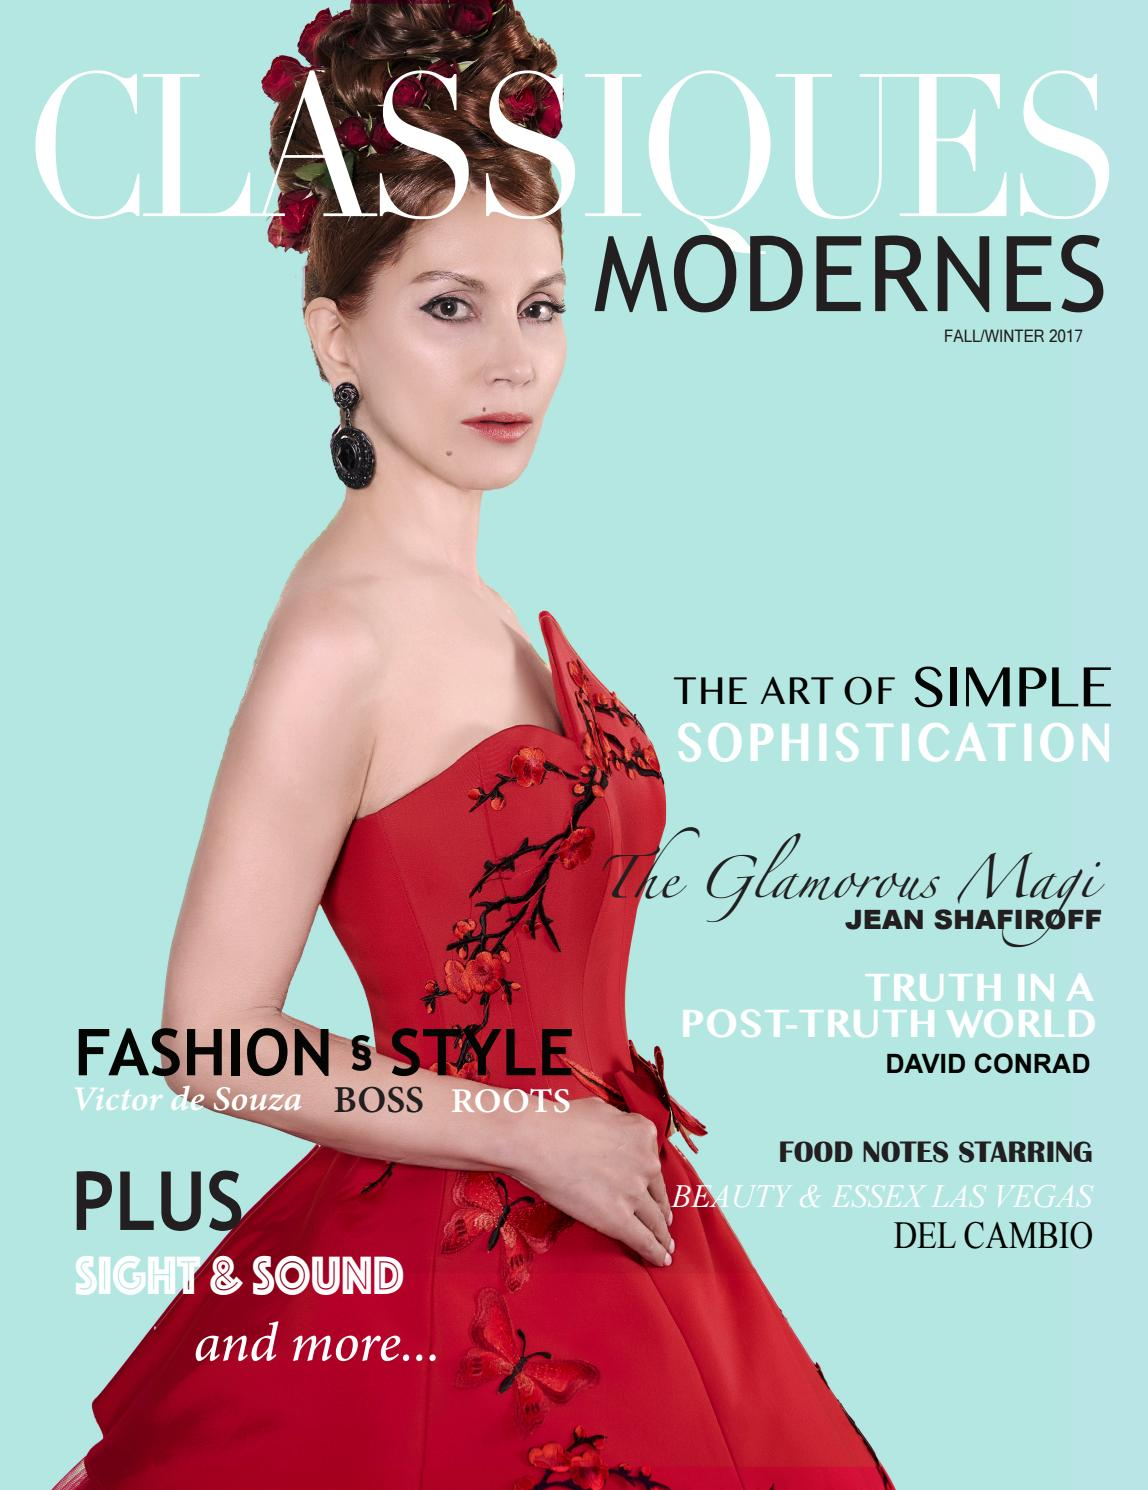 Classiques Modernes Fall/Winter 2016-17 by Classiques Modernes - issuu